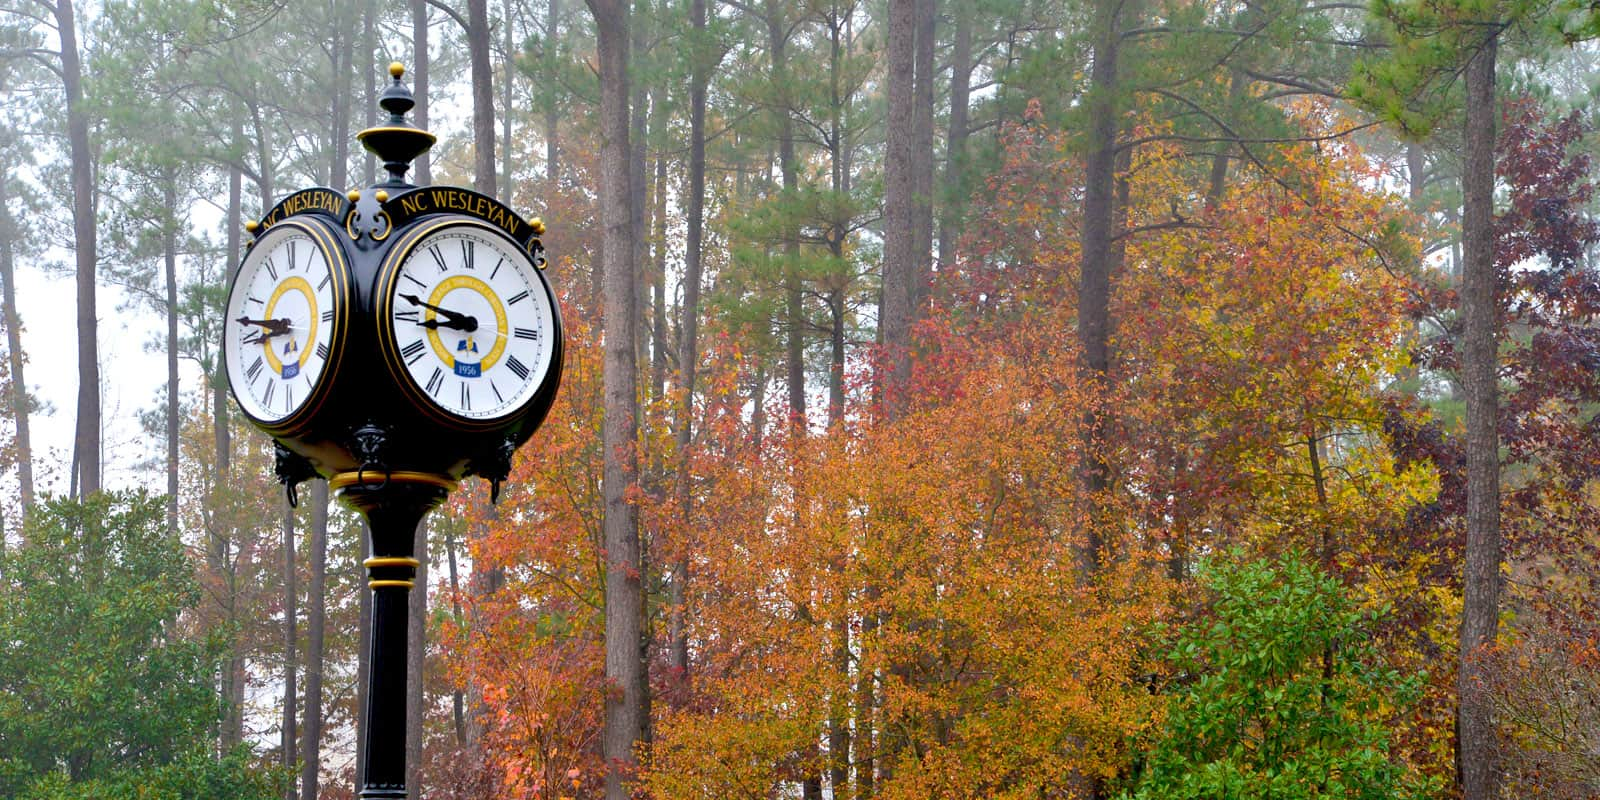 NC Wesleyan Clock in fall